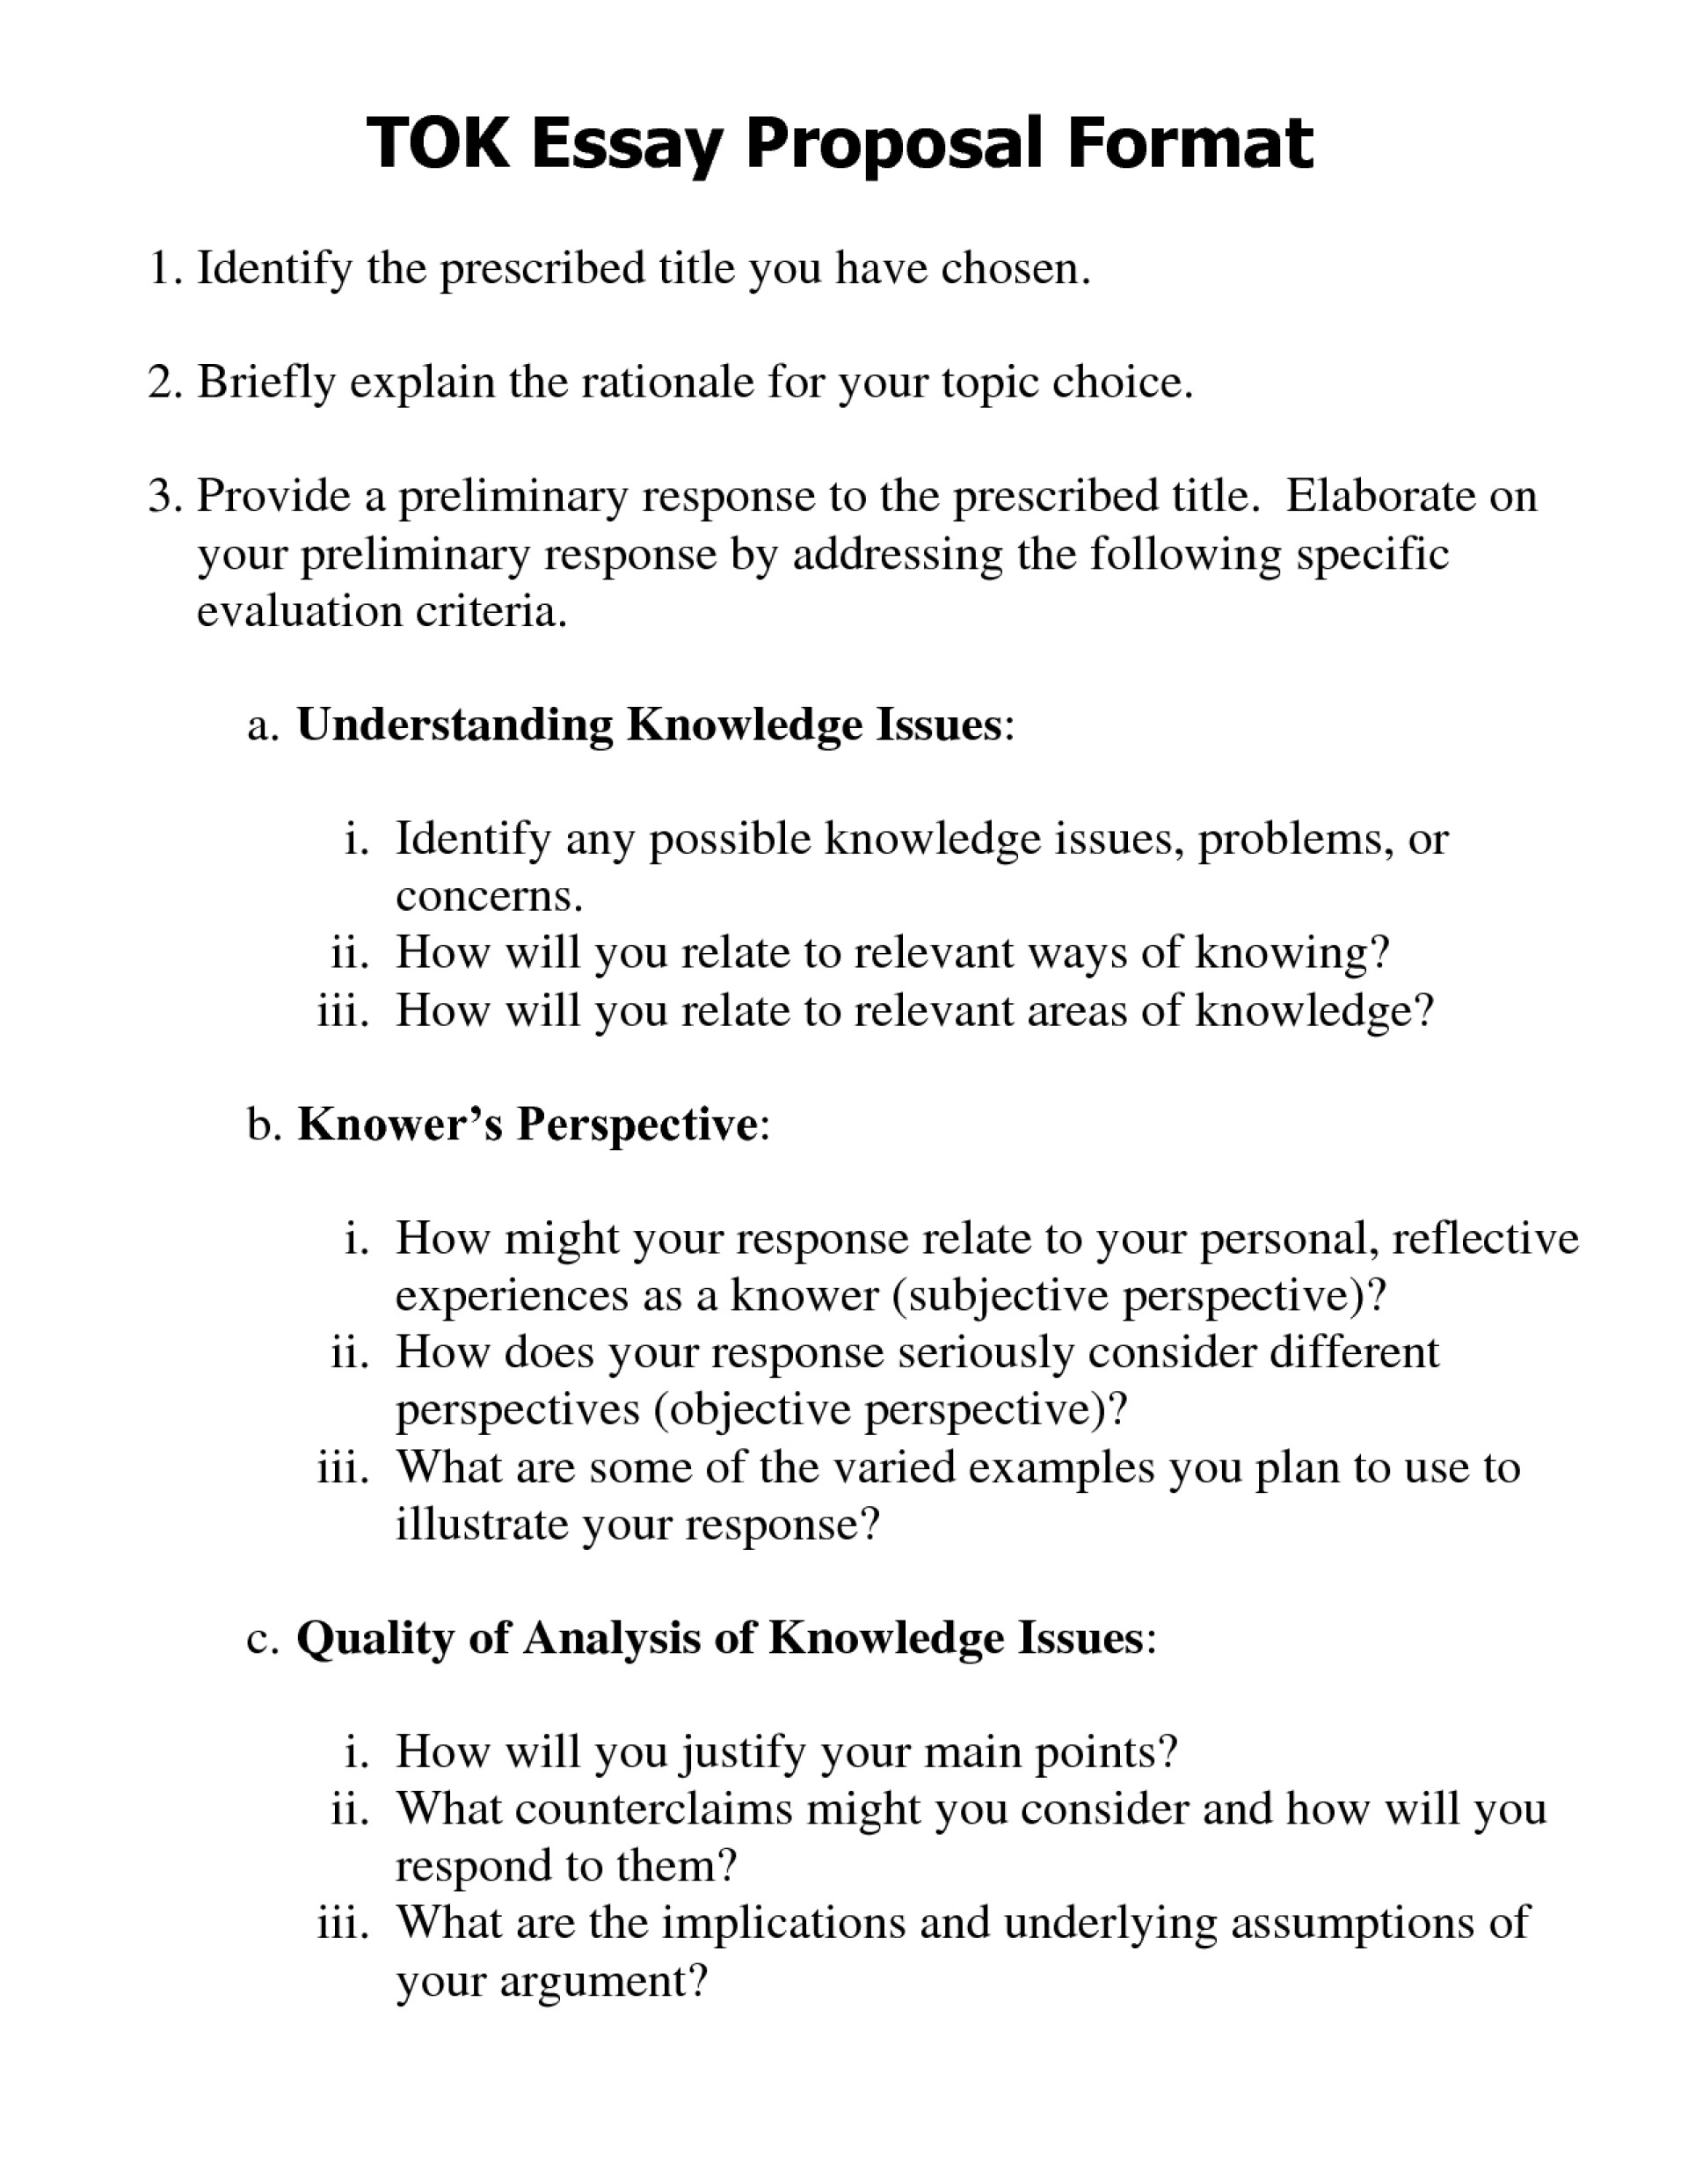 006 Olxkktmp0l Essay Example How To Write Remarkable A Proposal Research Paper In Mla Format Persuasive Pdf 1920